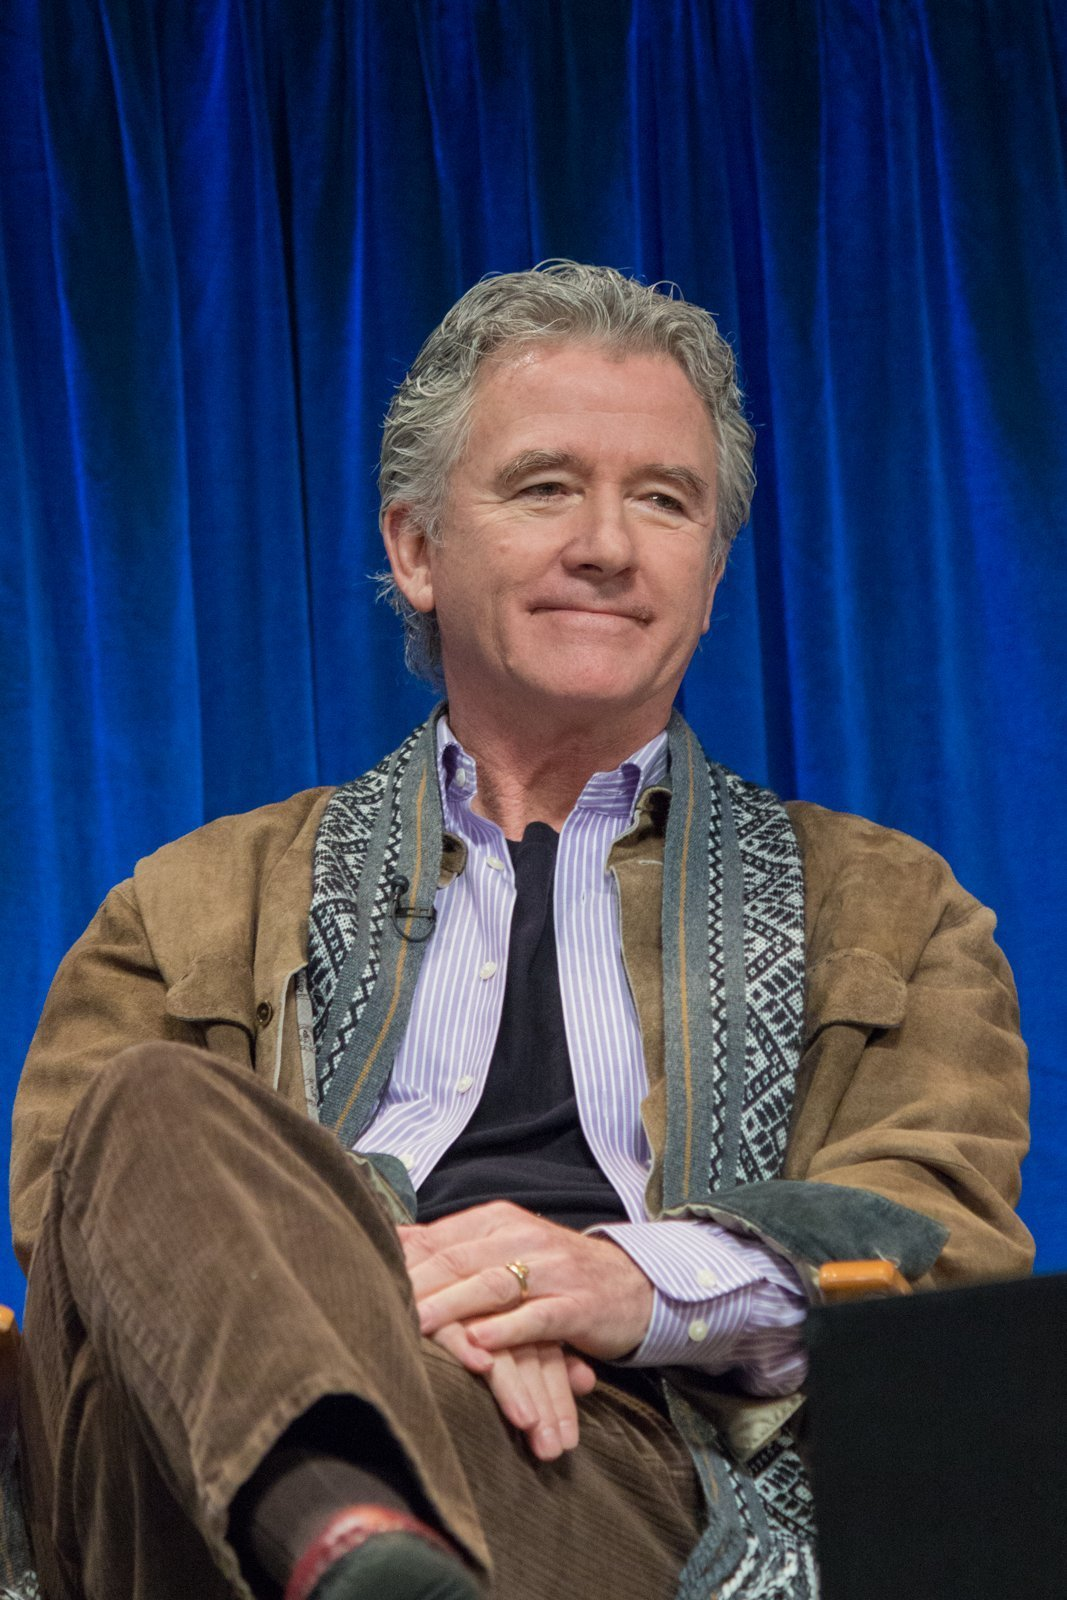 Patrick Duffy at the PaleyFest 2013 forum on the TV show Dallas. | Photo: Wikimedia Commons